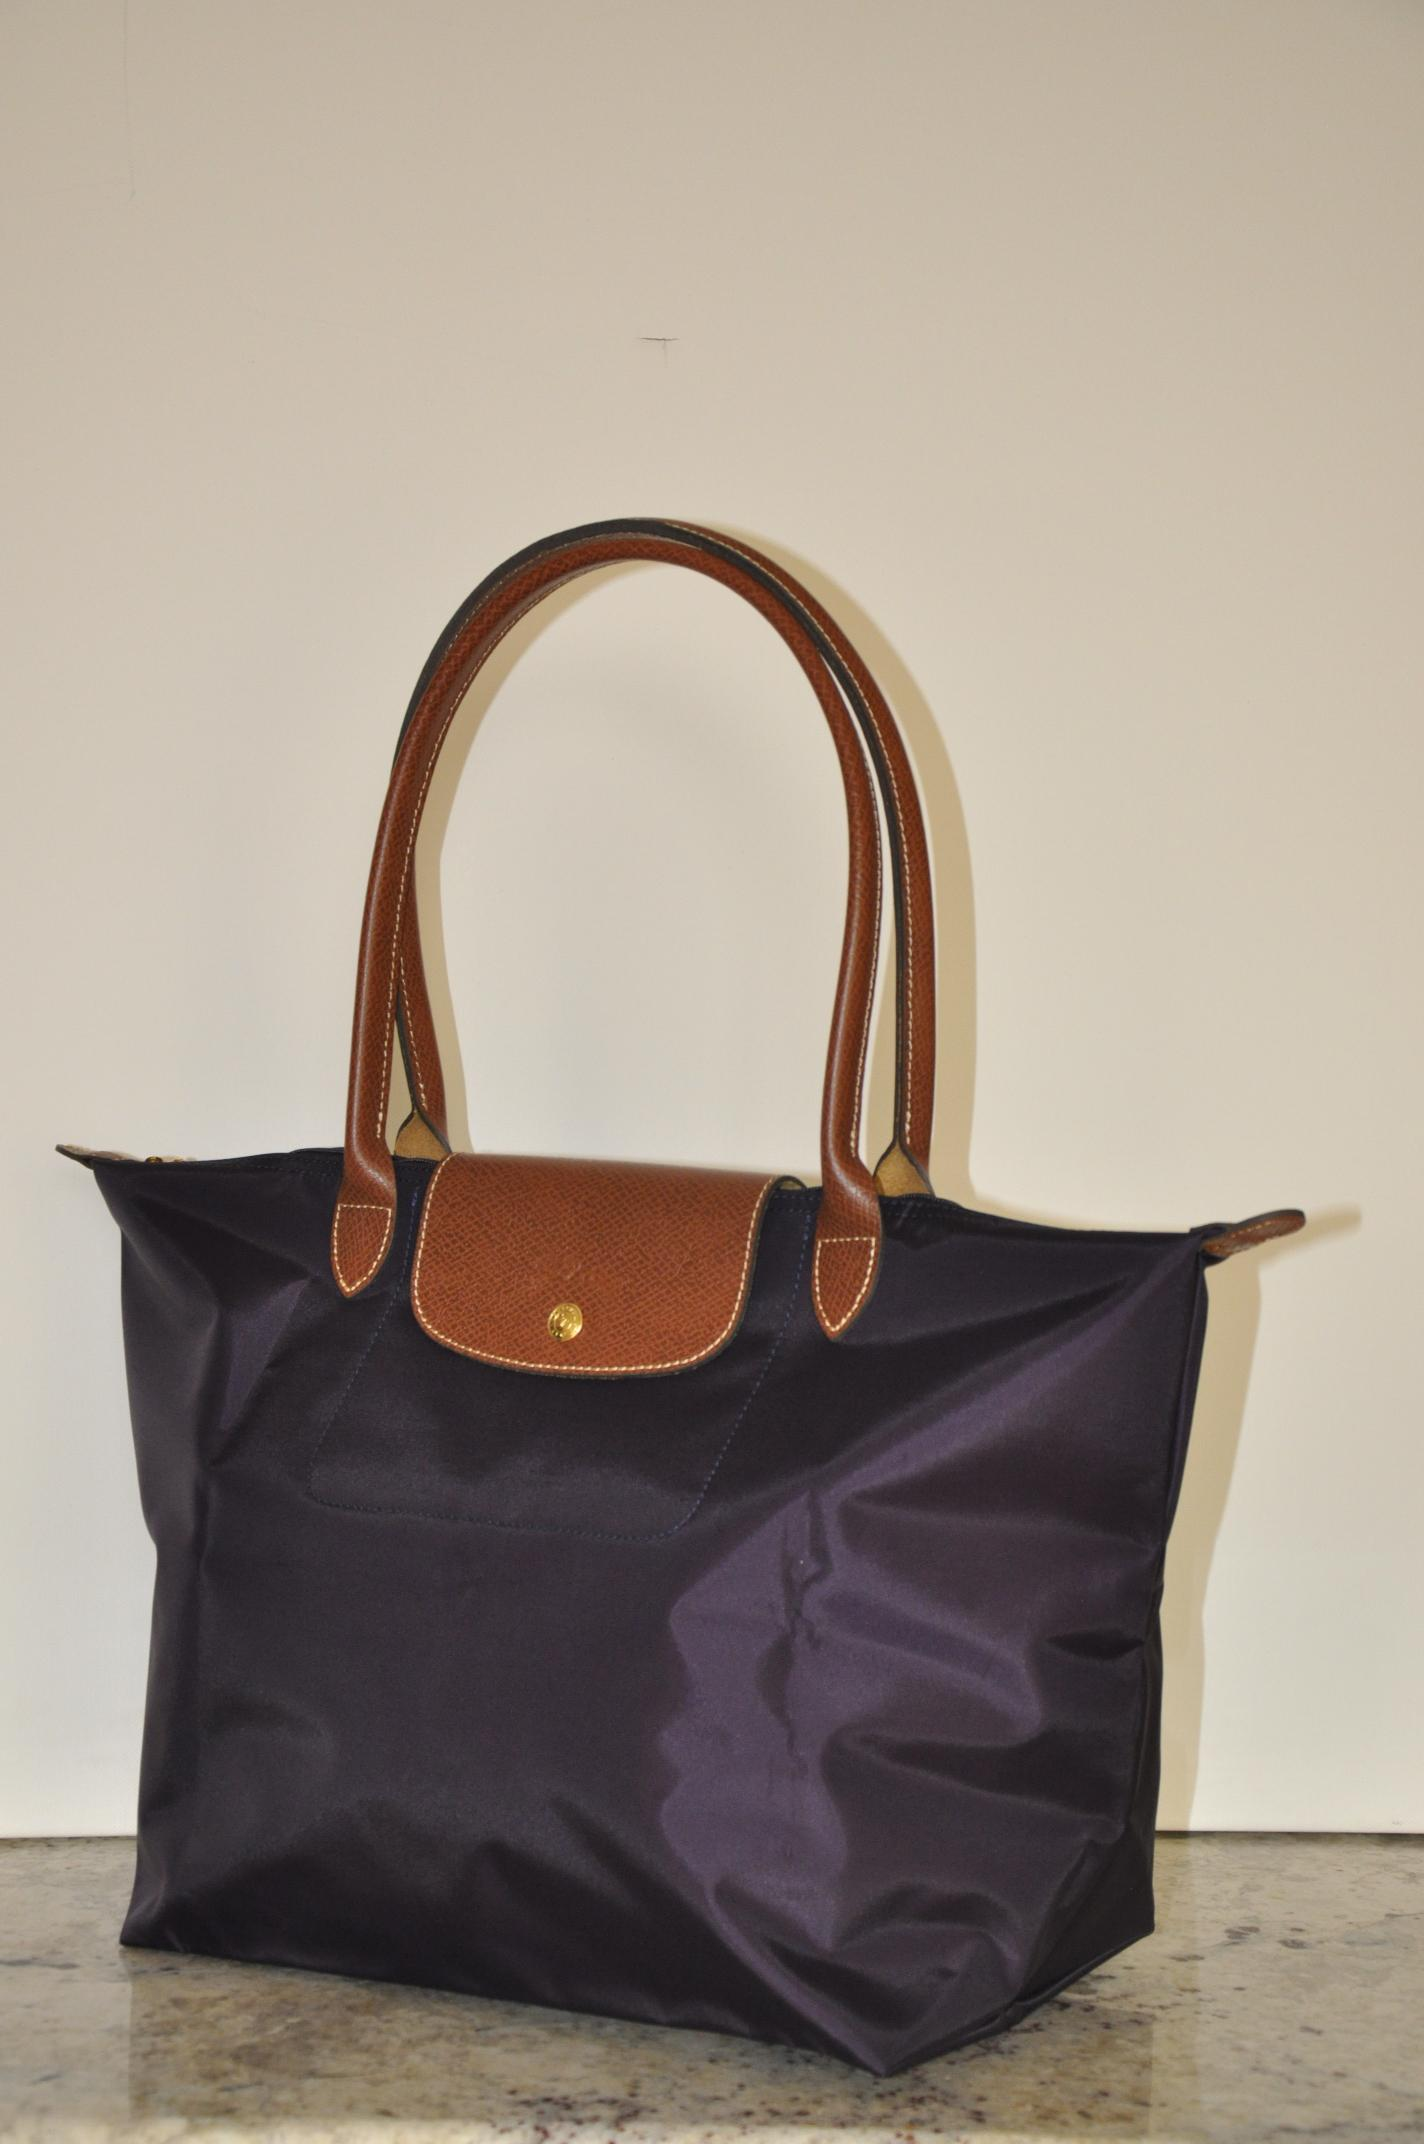 Discount Longchamp Le Pliage Tote Bags 1899 089 645 Bilberry